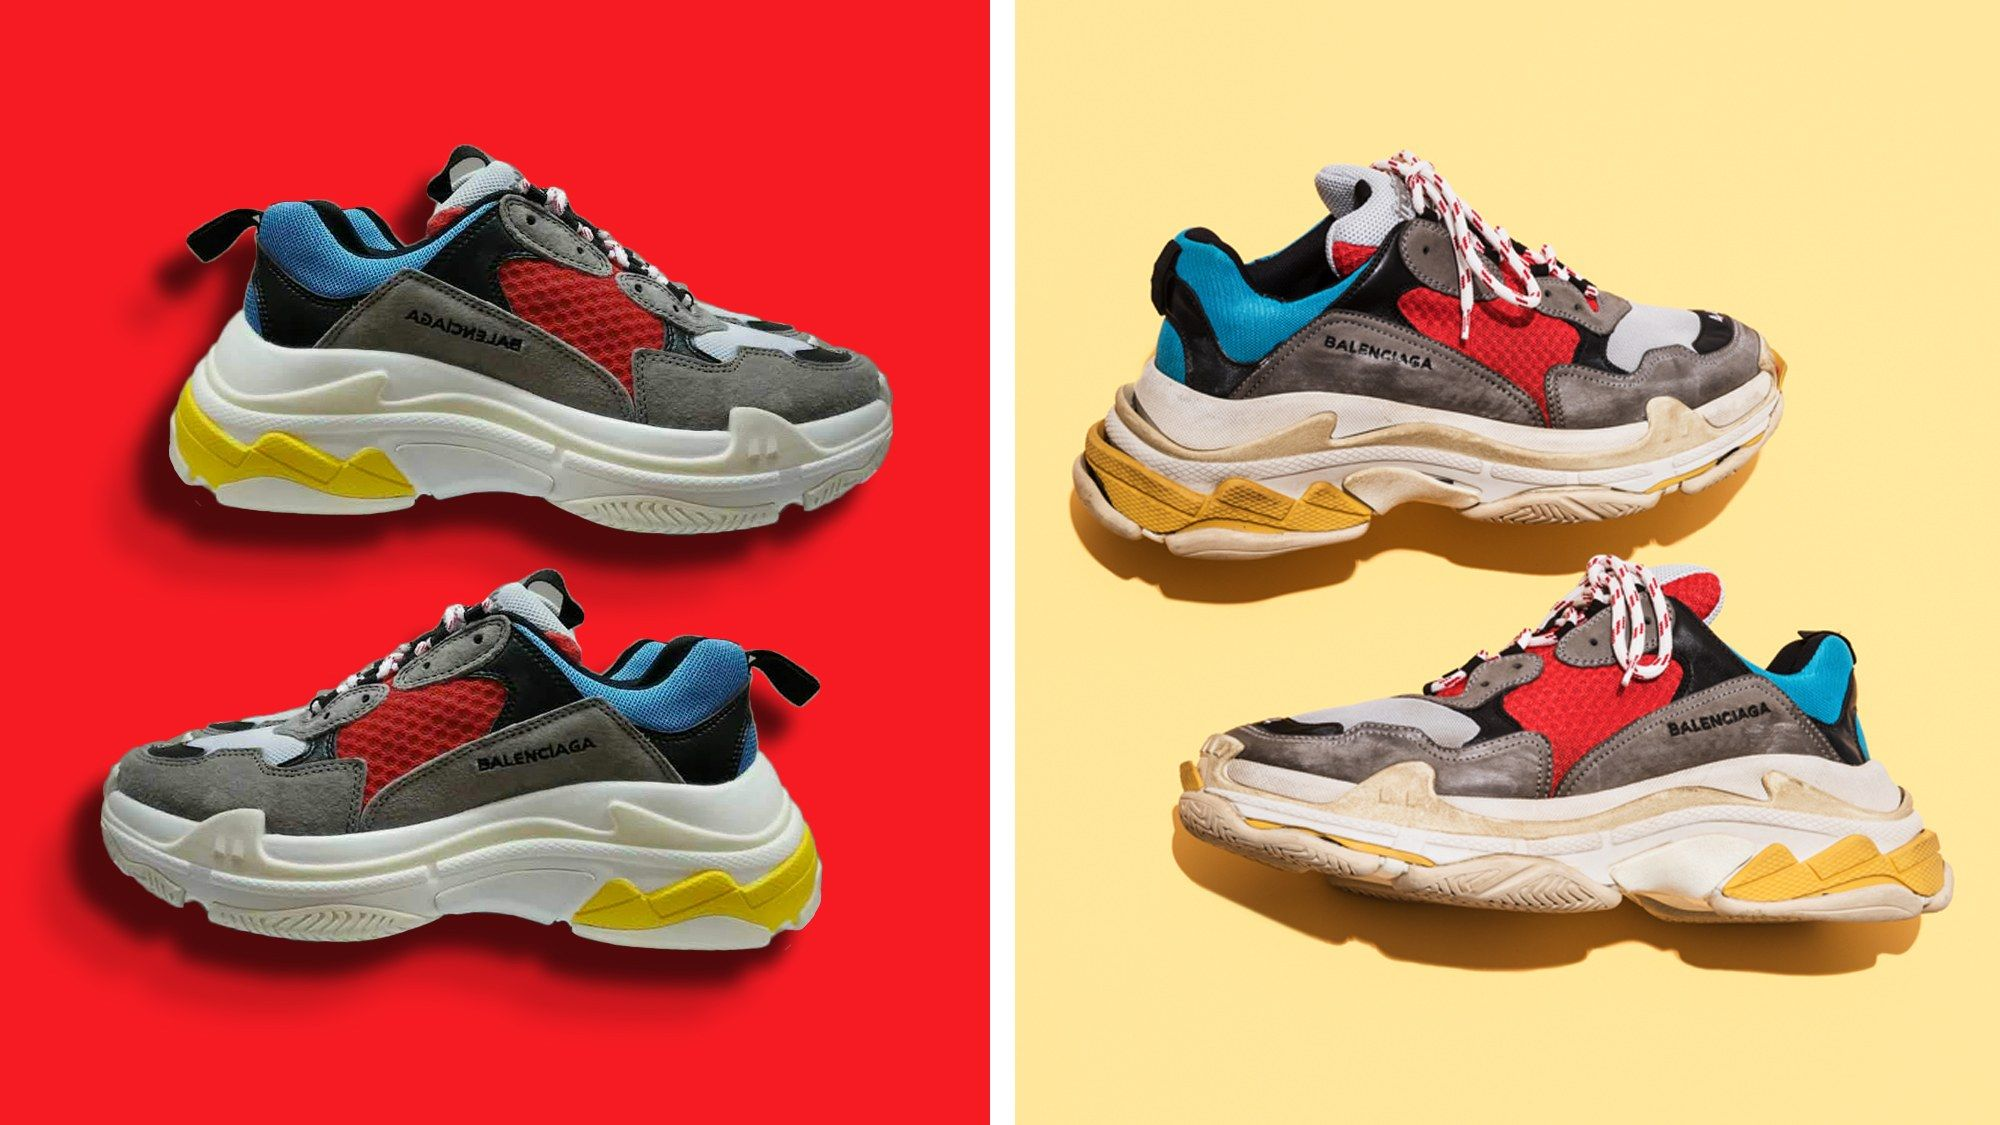 714178bf336 These Fake Balenciaga Sneakers Cost More Than Common Projects Balenciaga  Triple S sneakers are some of the hottest in the street right now